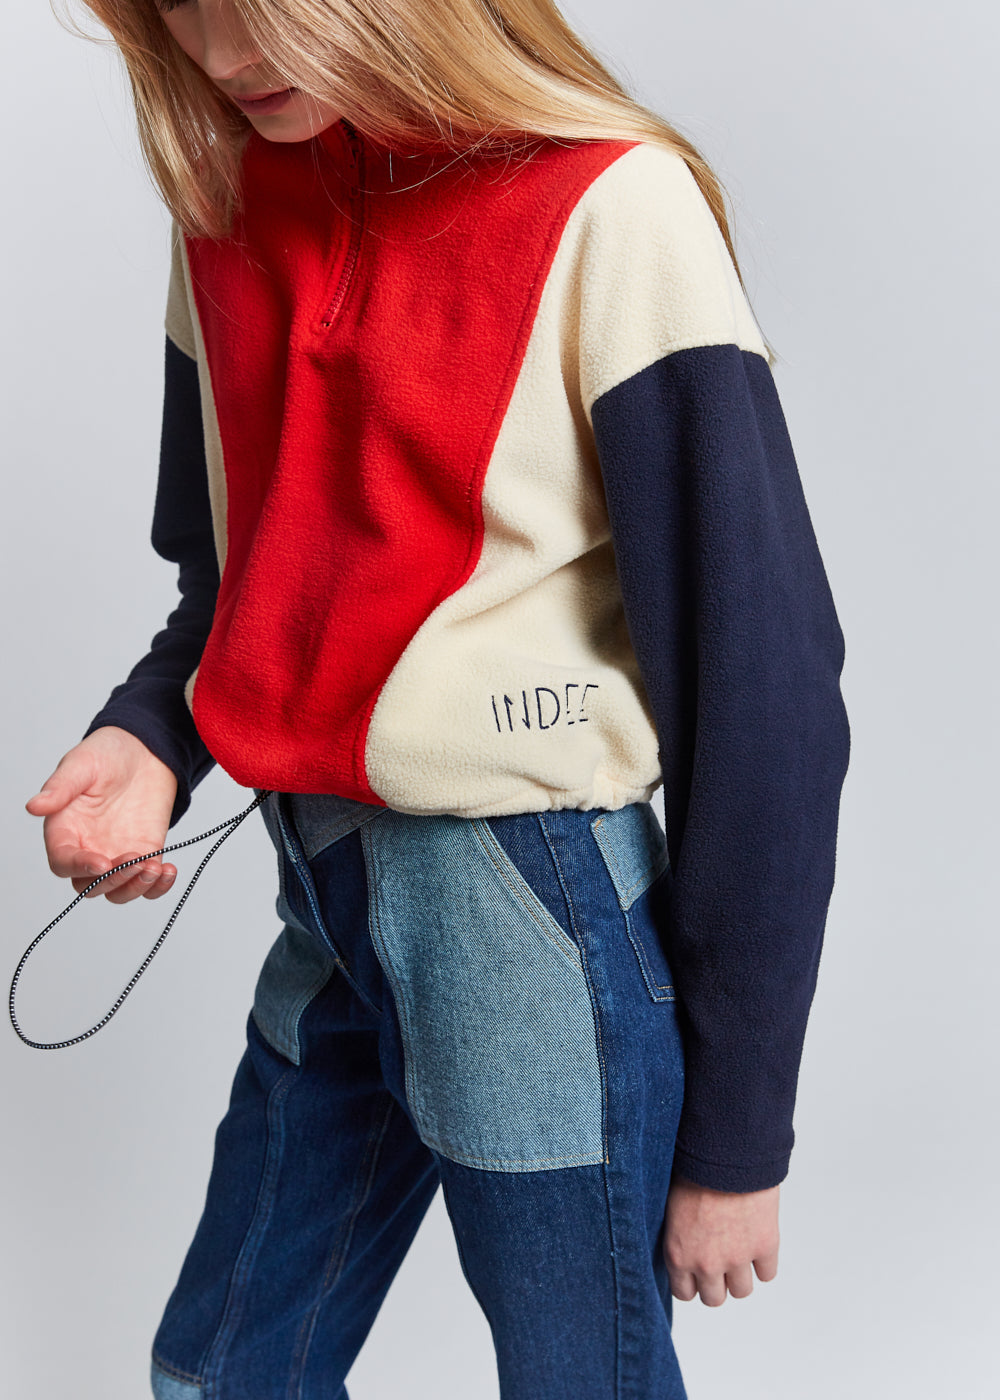 INDEE FLEECE SWEATER ITGIRL